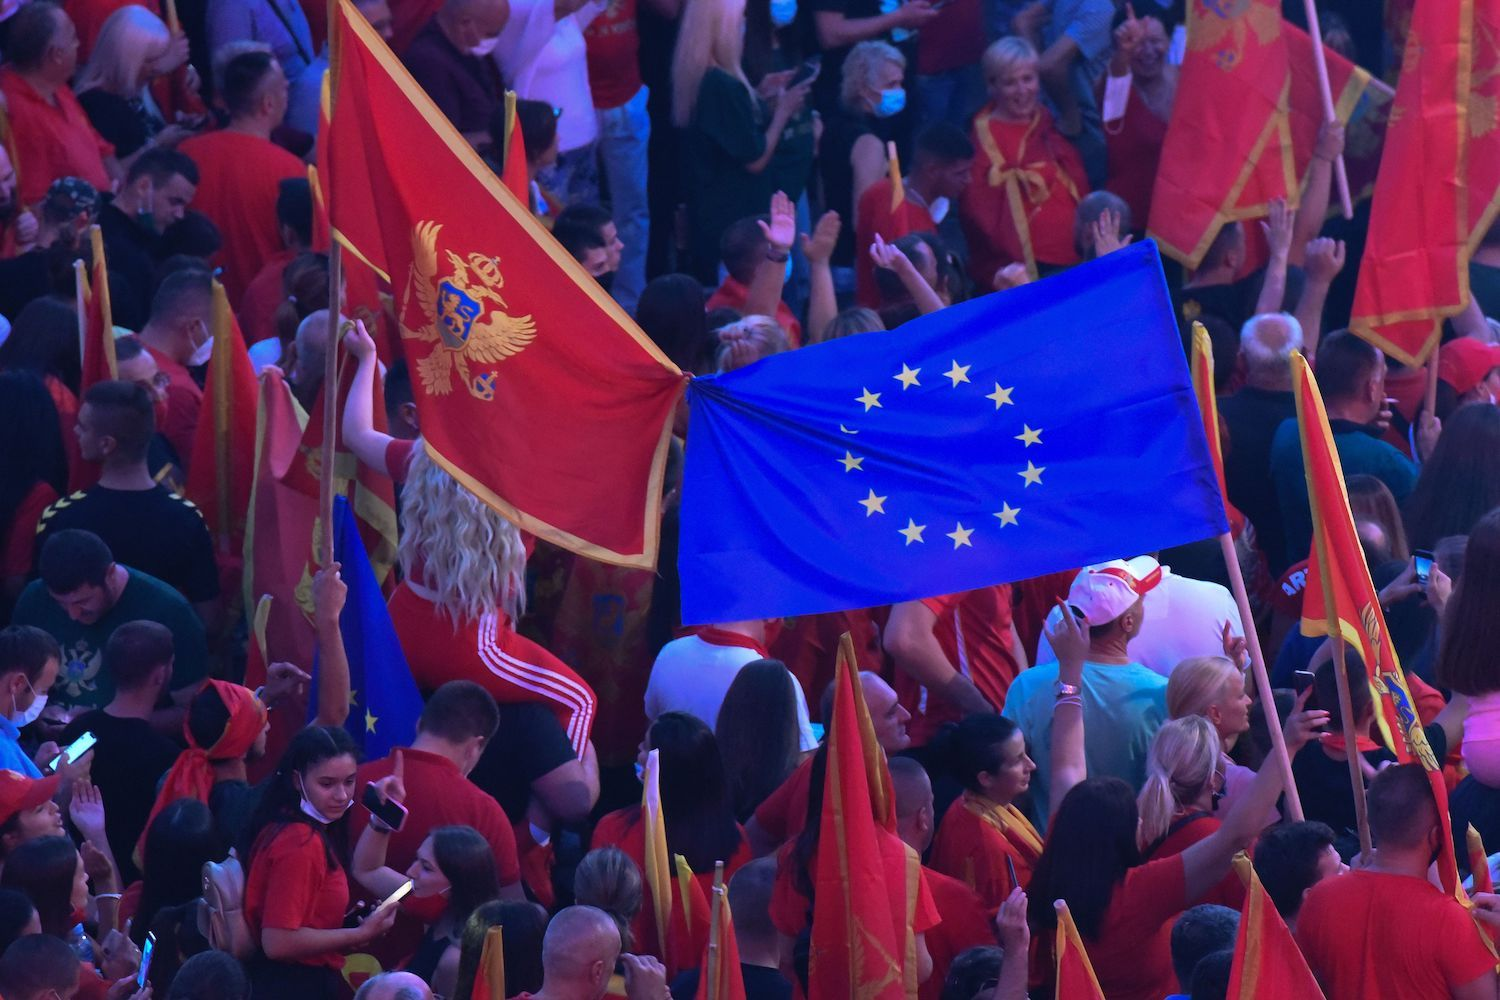 Self-described patriots wave national flags and European flag during a post-election rally in Podgorica, on September 6, 2020. - Supporters of President Milo Djukanovic and his Democratic Party of Socialists (DPS) have staged a rally in support of Montenegro's sovereignty, as local media report. (Photo by Savo PRELEVIC / AFP) (Photo by SAVO PRELEVIC/AFP via Getty Images)